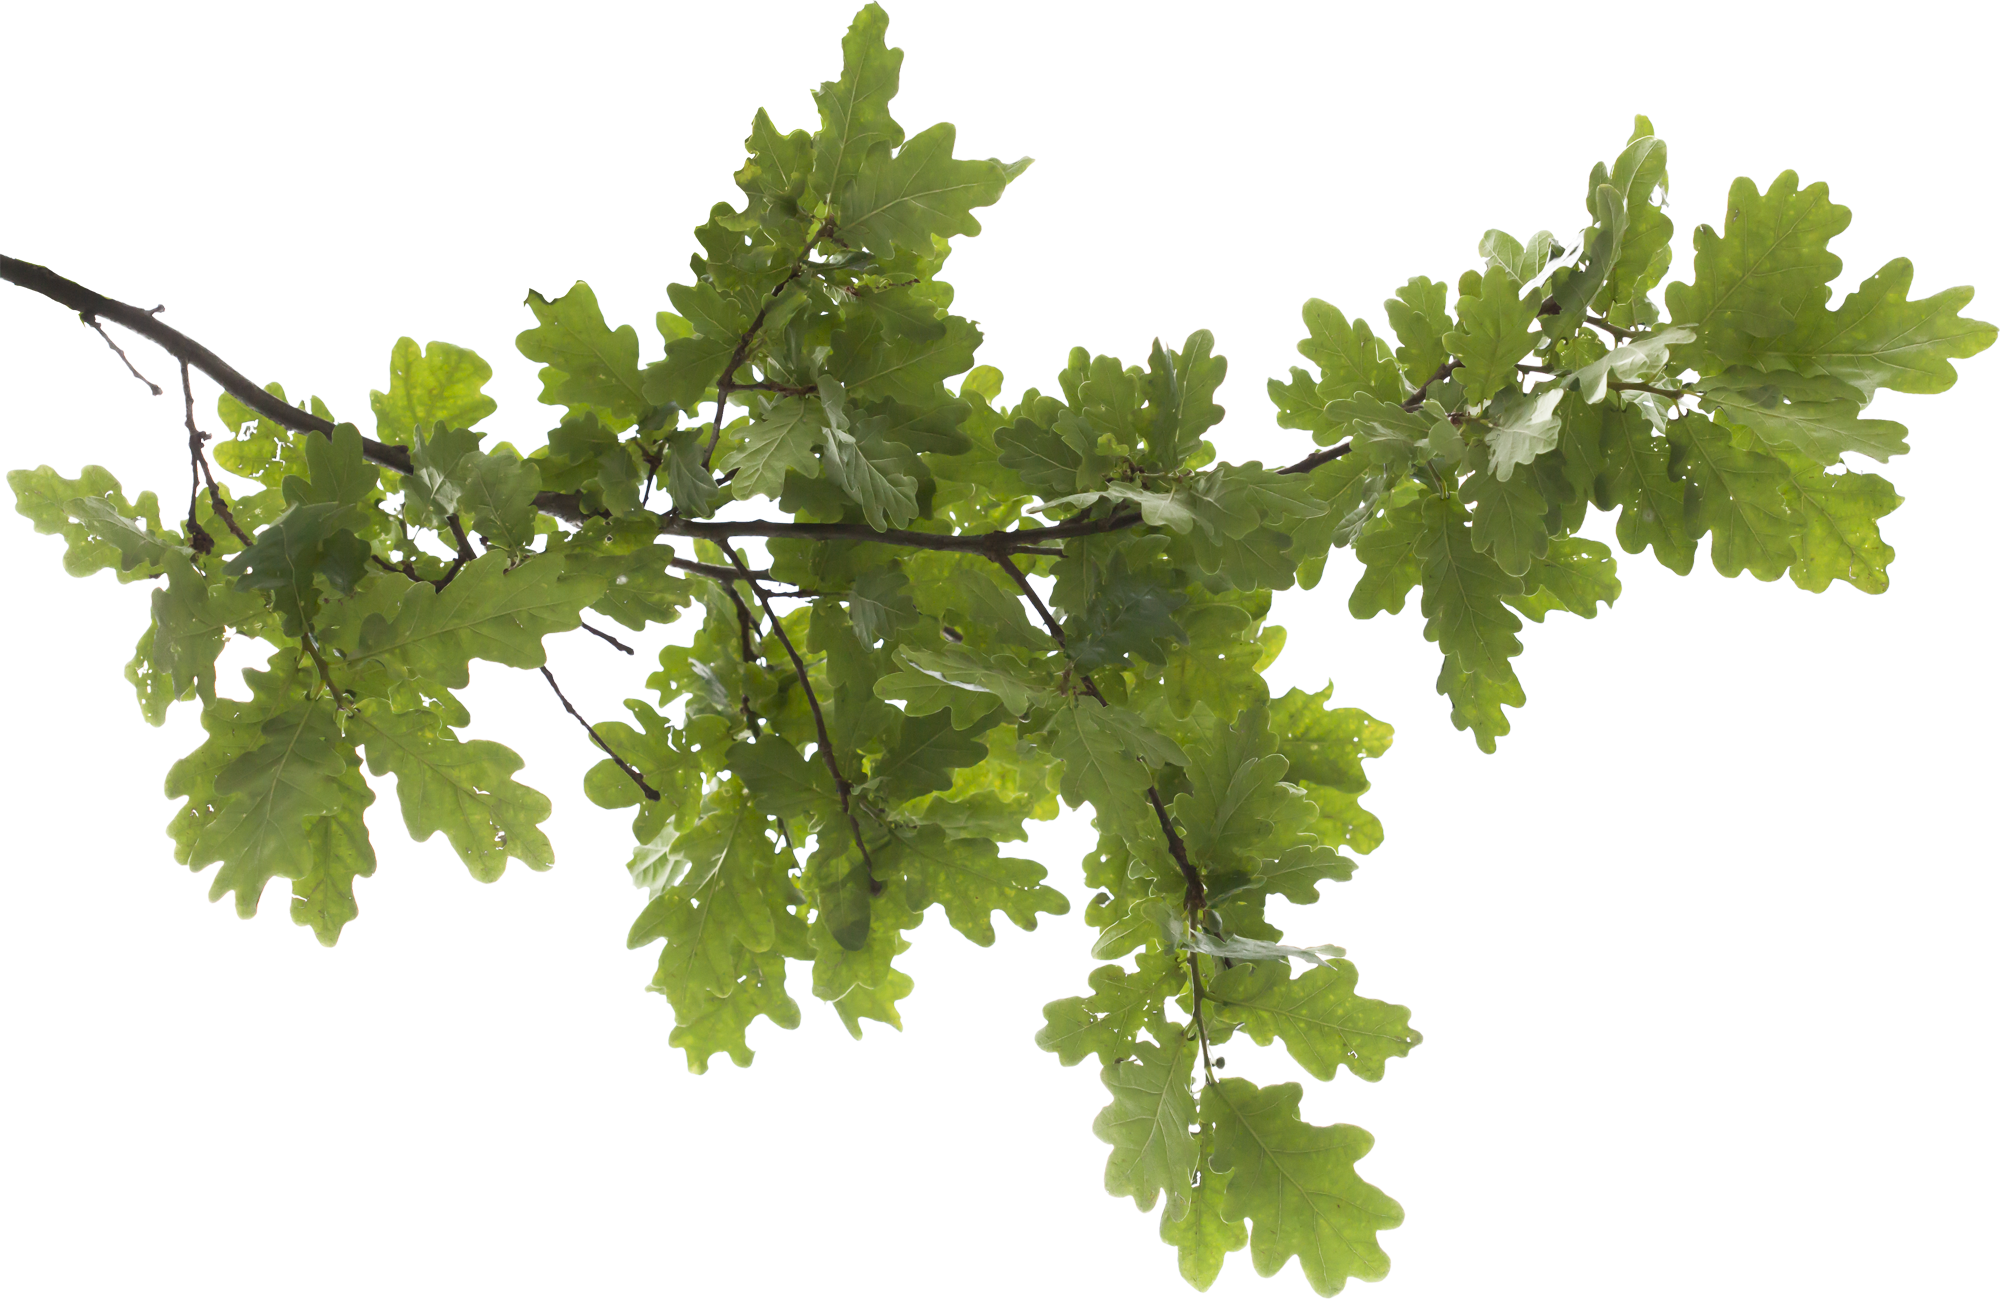 PNG File Name: Tree Branch PlusPng.com  - Branch PNG